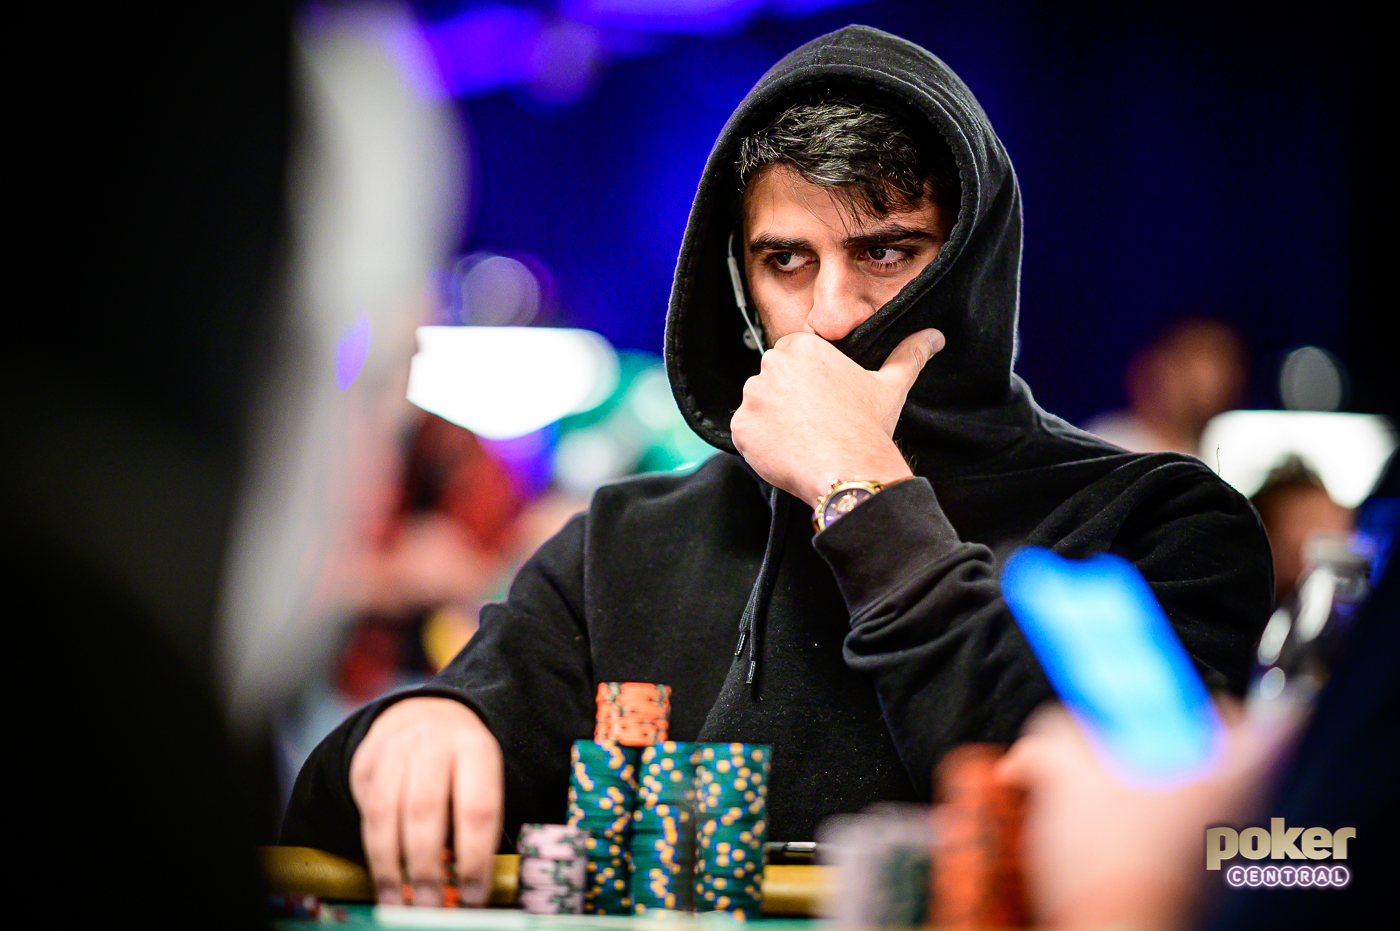 Daniel Hachem was locked in and focused during his six-day WSOP Main Event run.